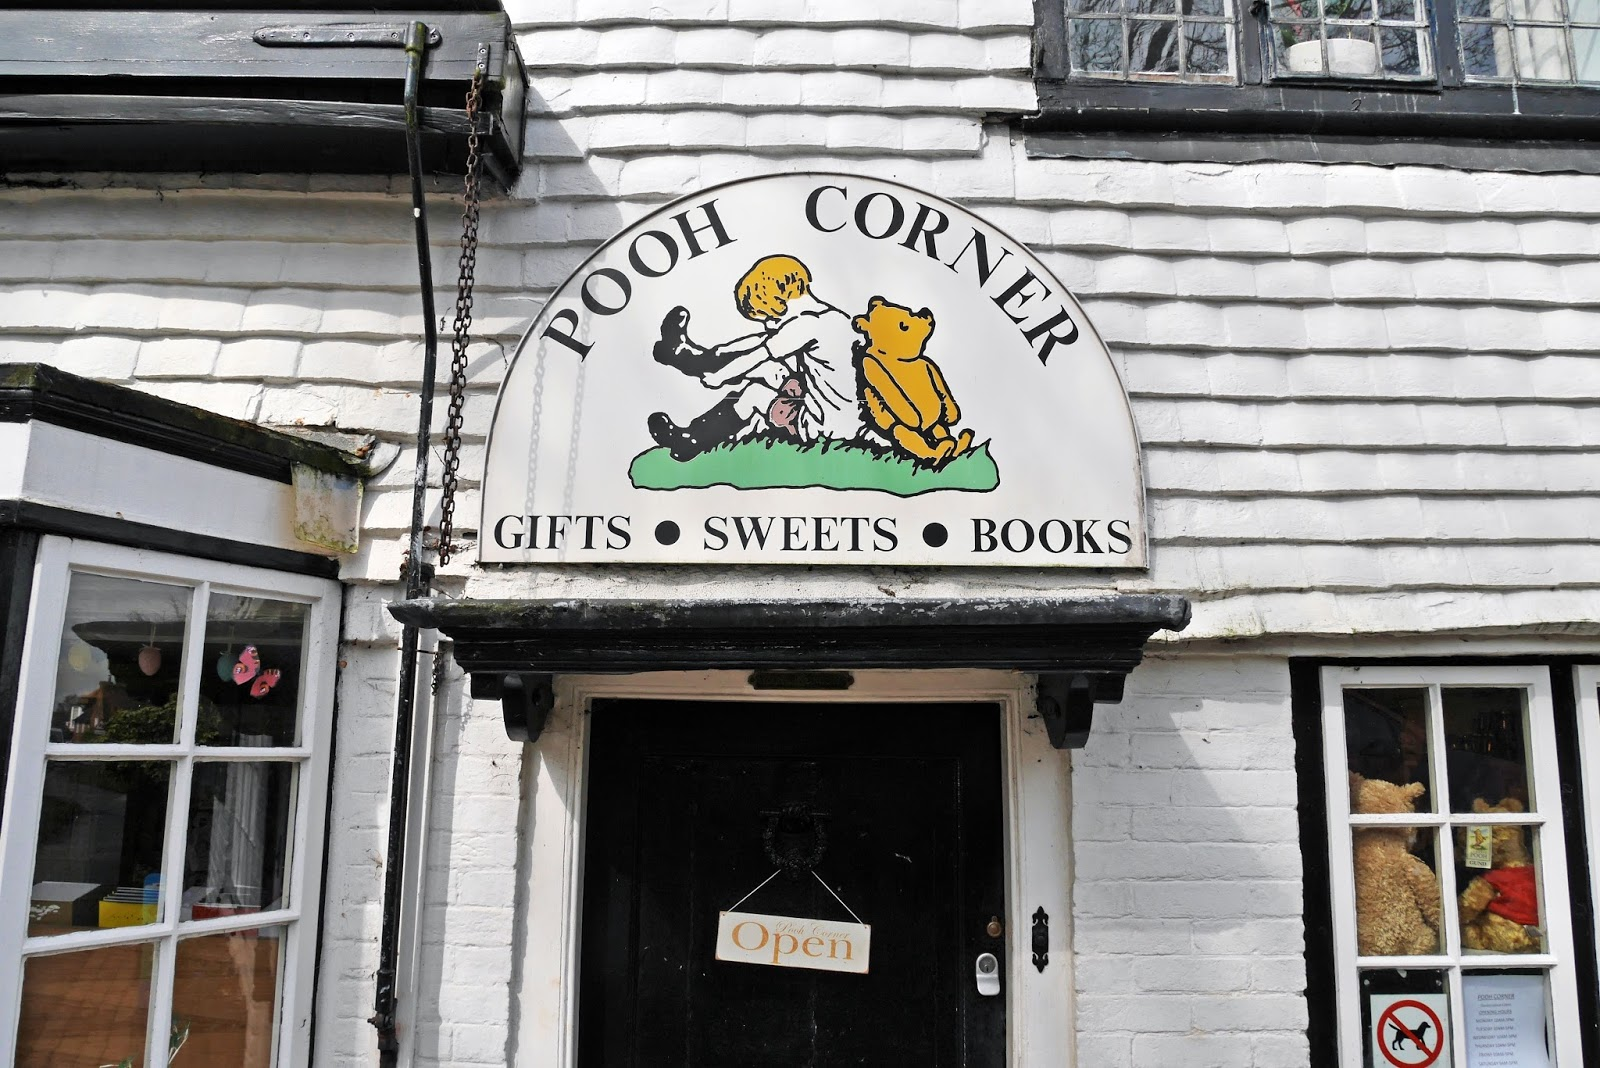 Pooh Corner gift shop sign, Hartfield